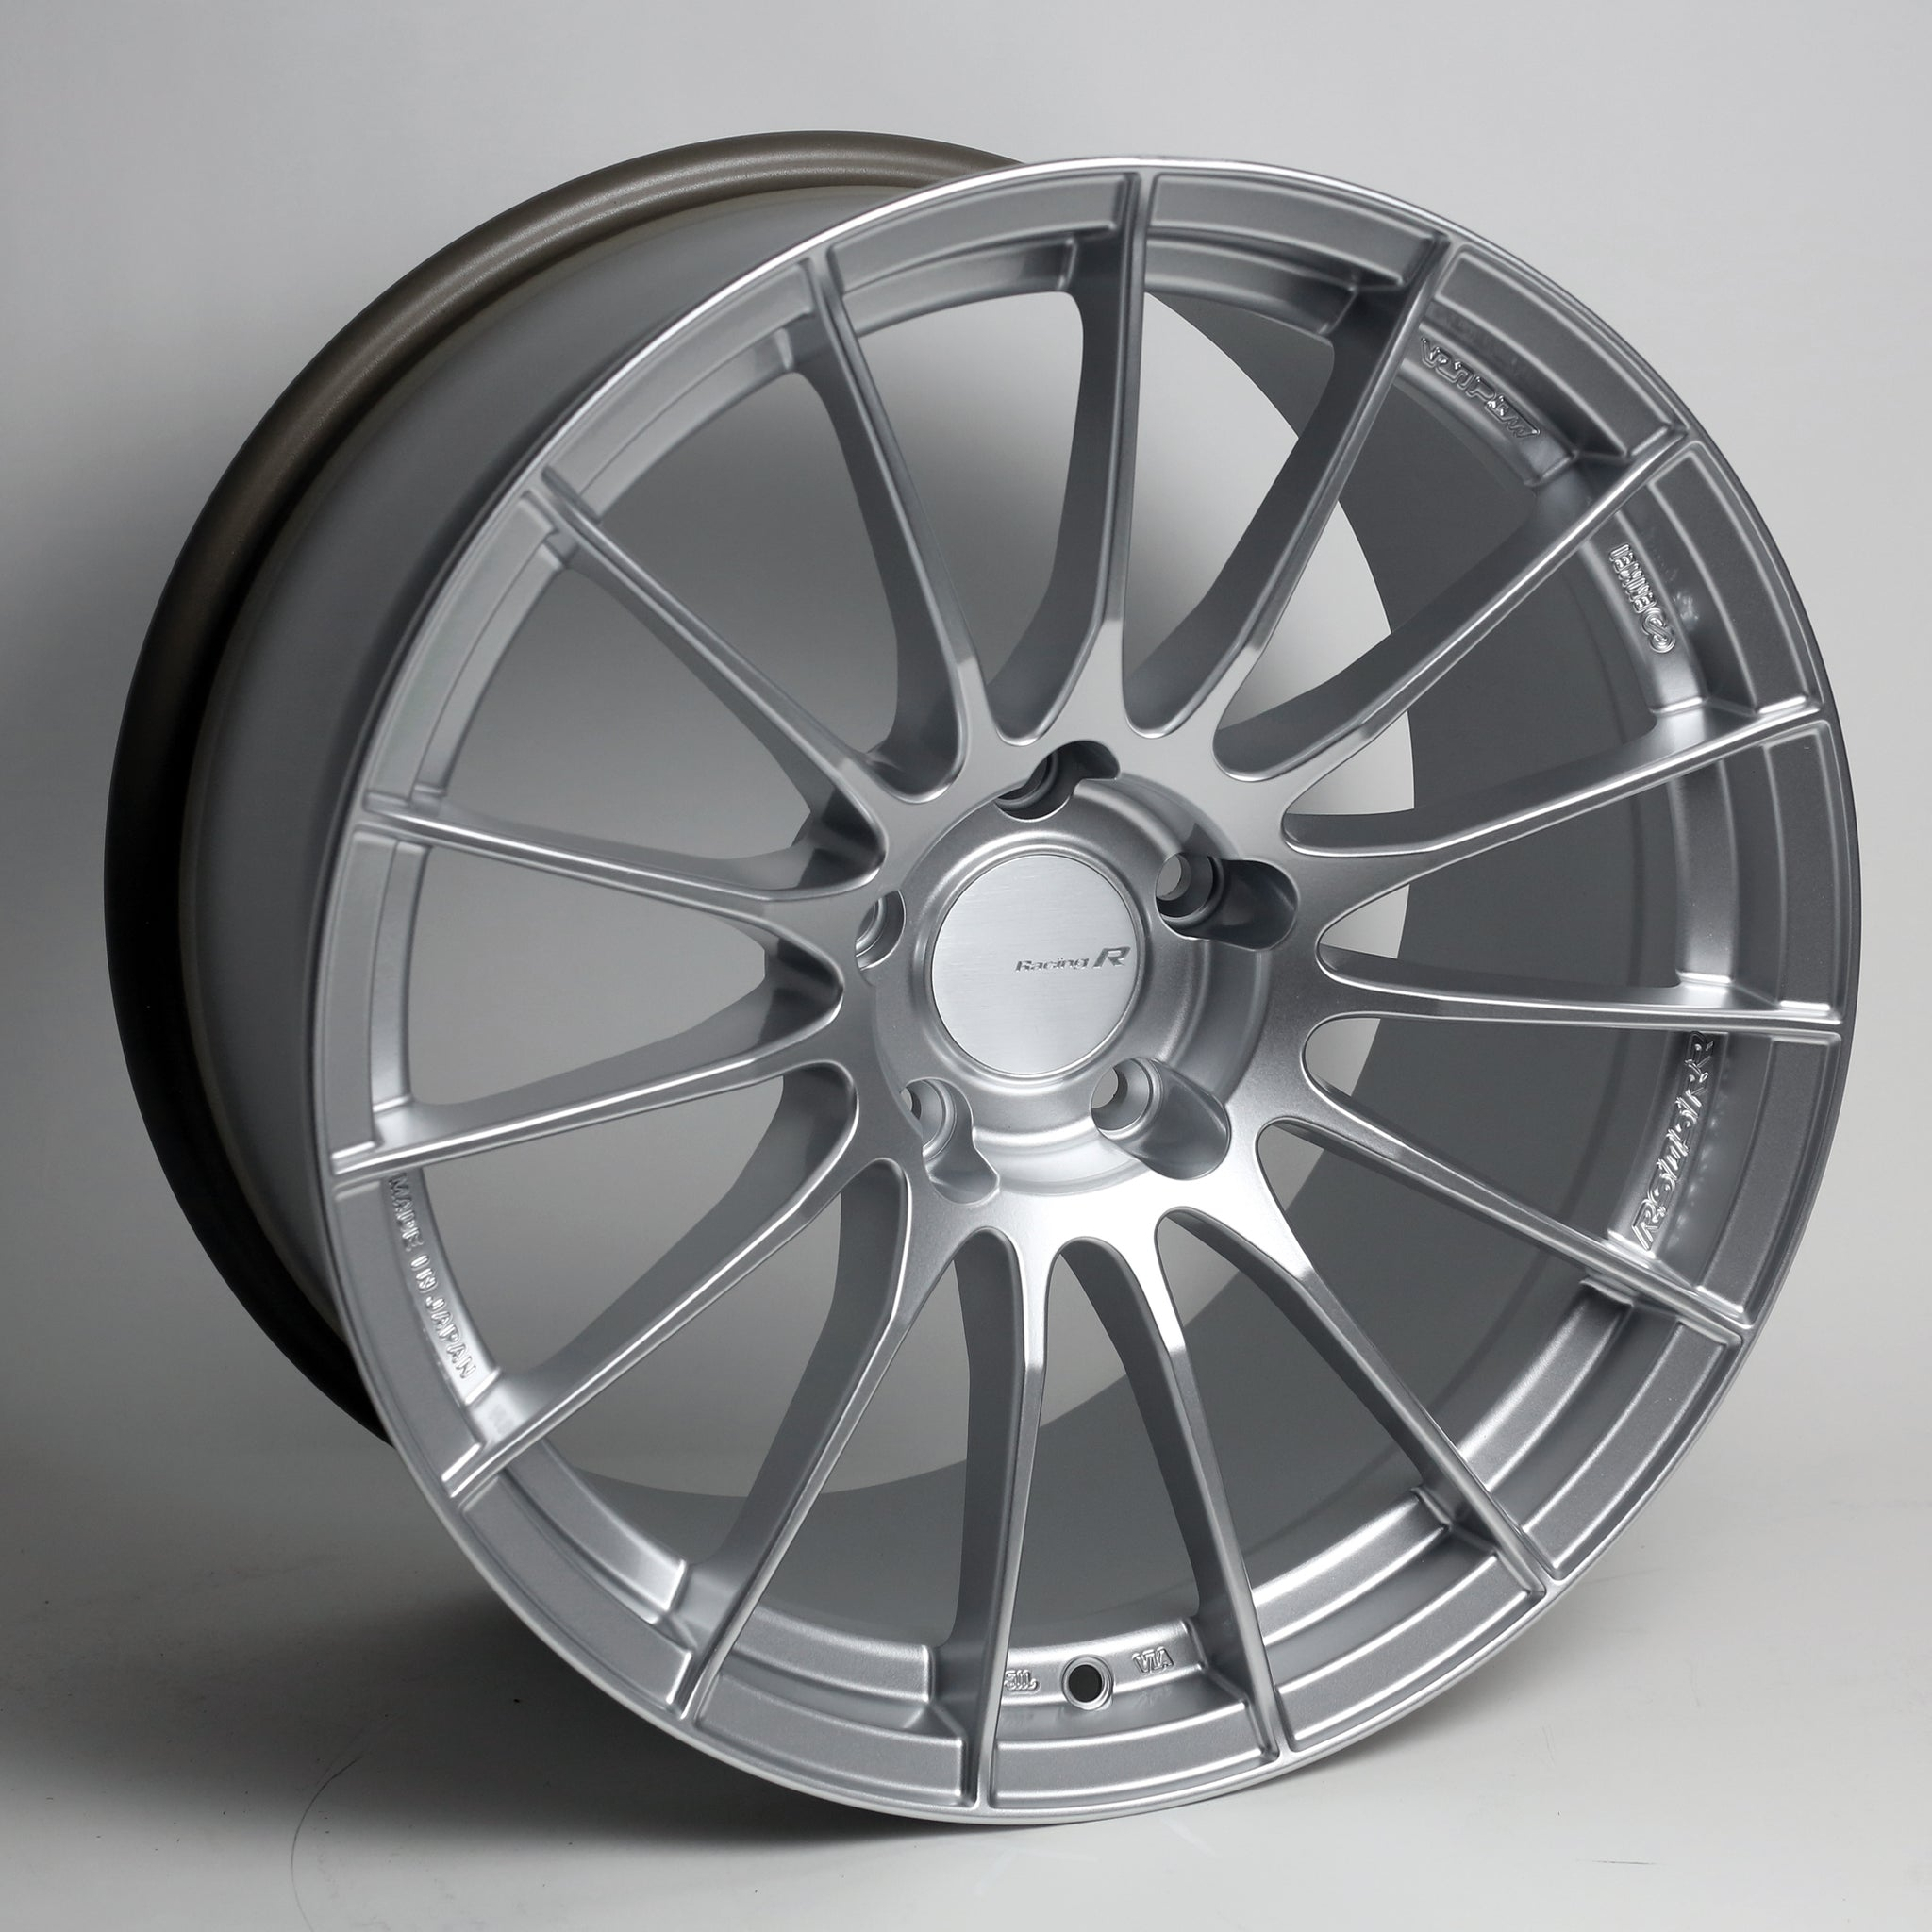 Enkei RS05RR 18x10 22mm Offset 5x114.3 75mm Bore Sparkle Silver Wheel